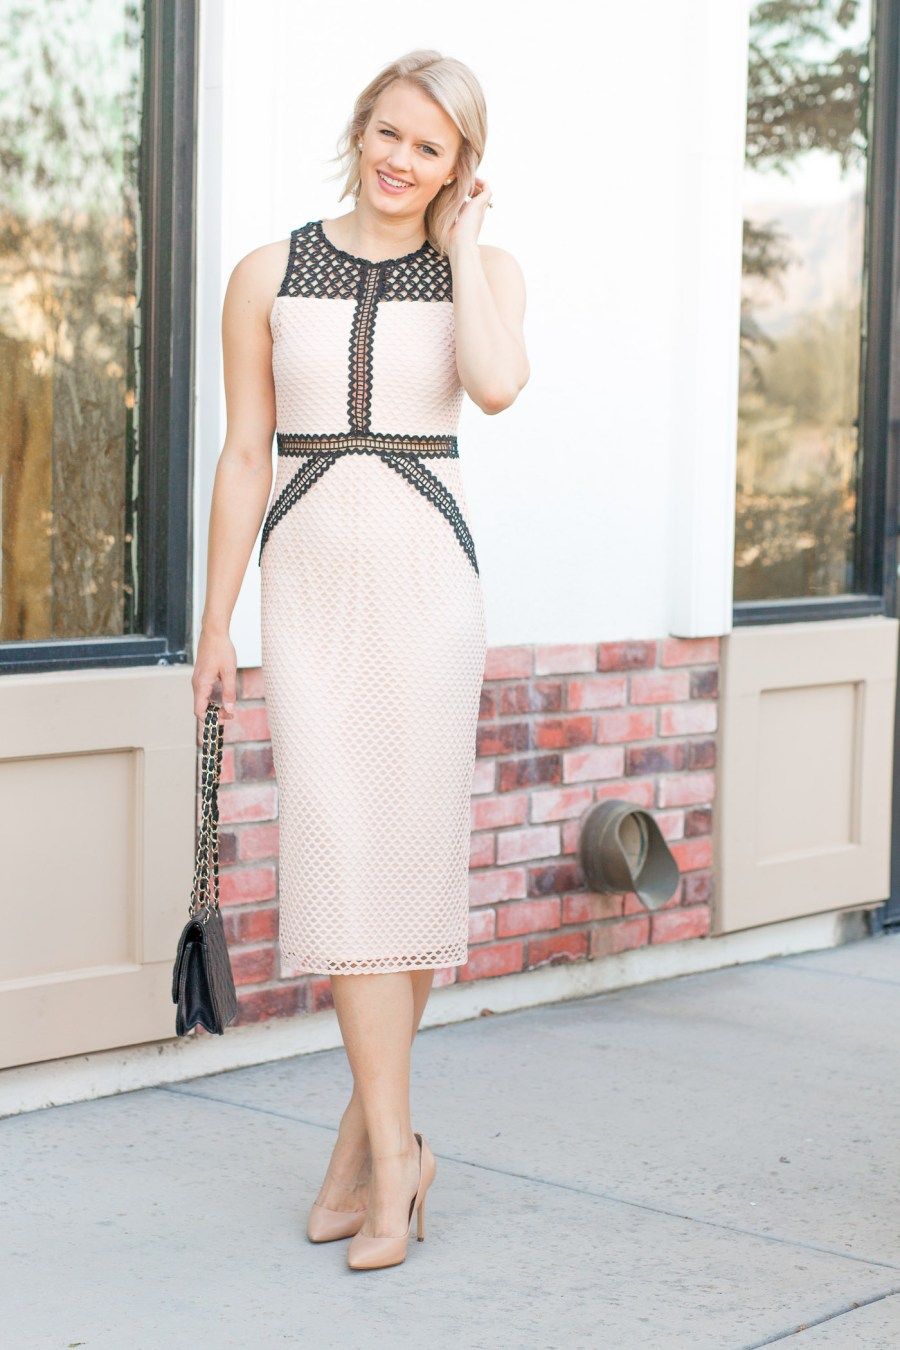 The Perfect Wedding Guest Dress, Topshop lace dress, midi dress, Treats and Trends, fashion blog